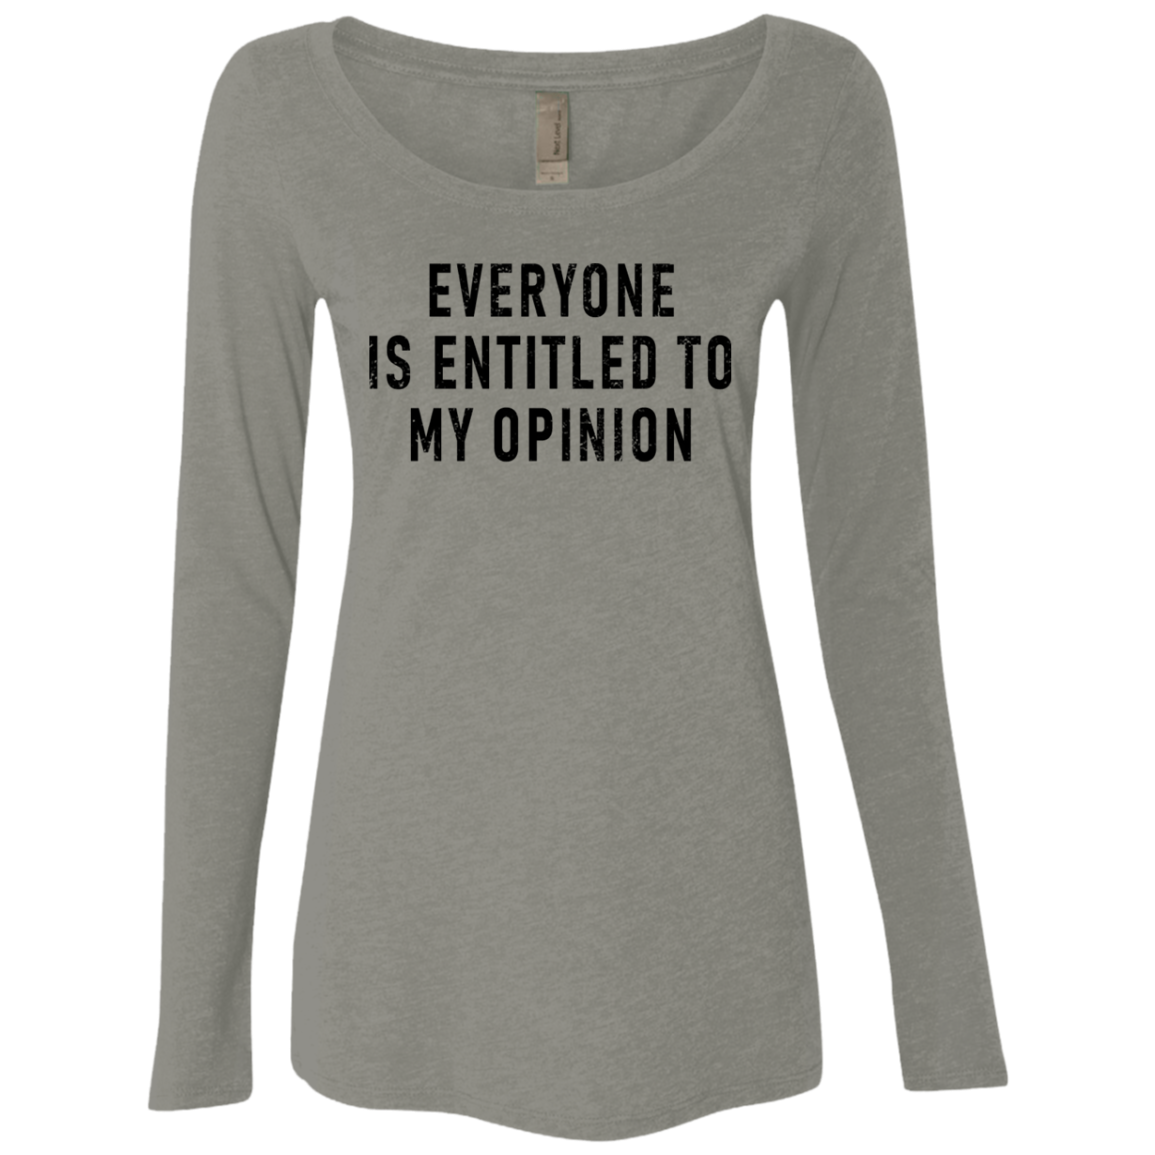 Everyone Is Entitled To My Opinion Women's Long Sleeve Tee